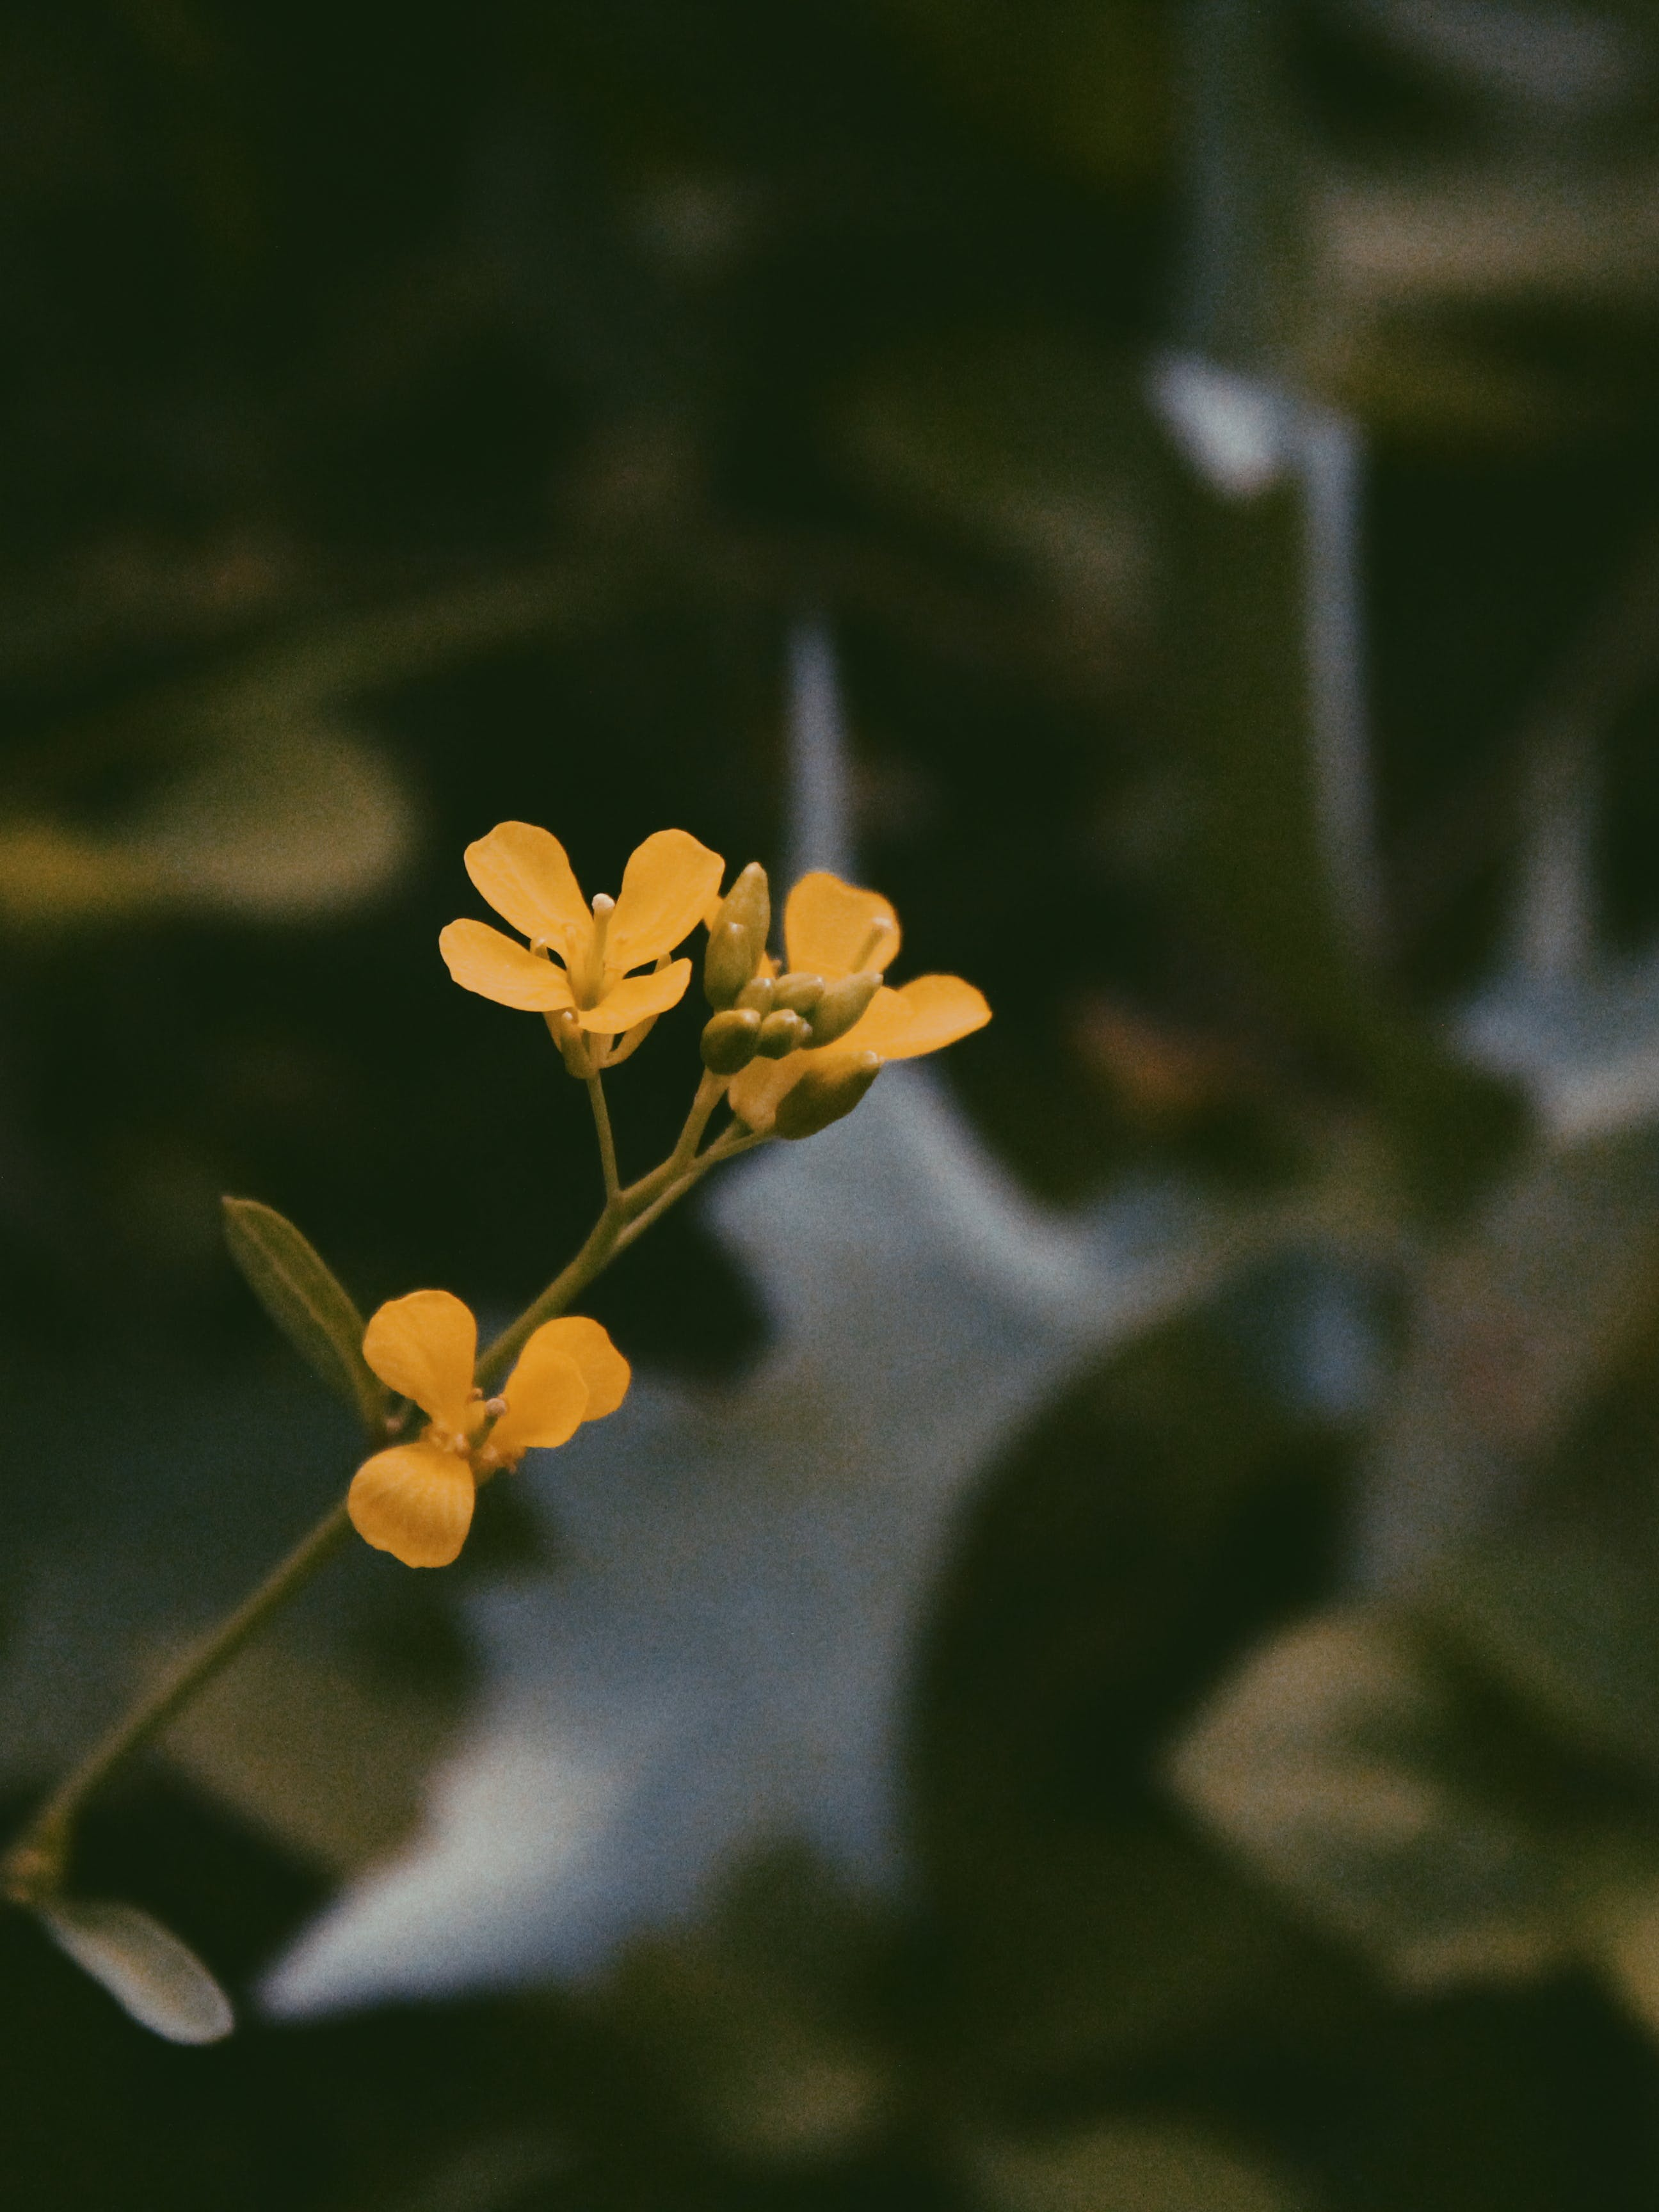 Soft-focus Photography of Yellow Petaled Flowers